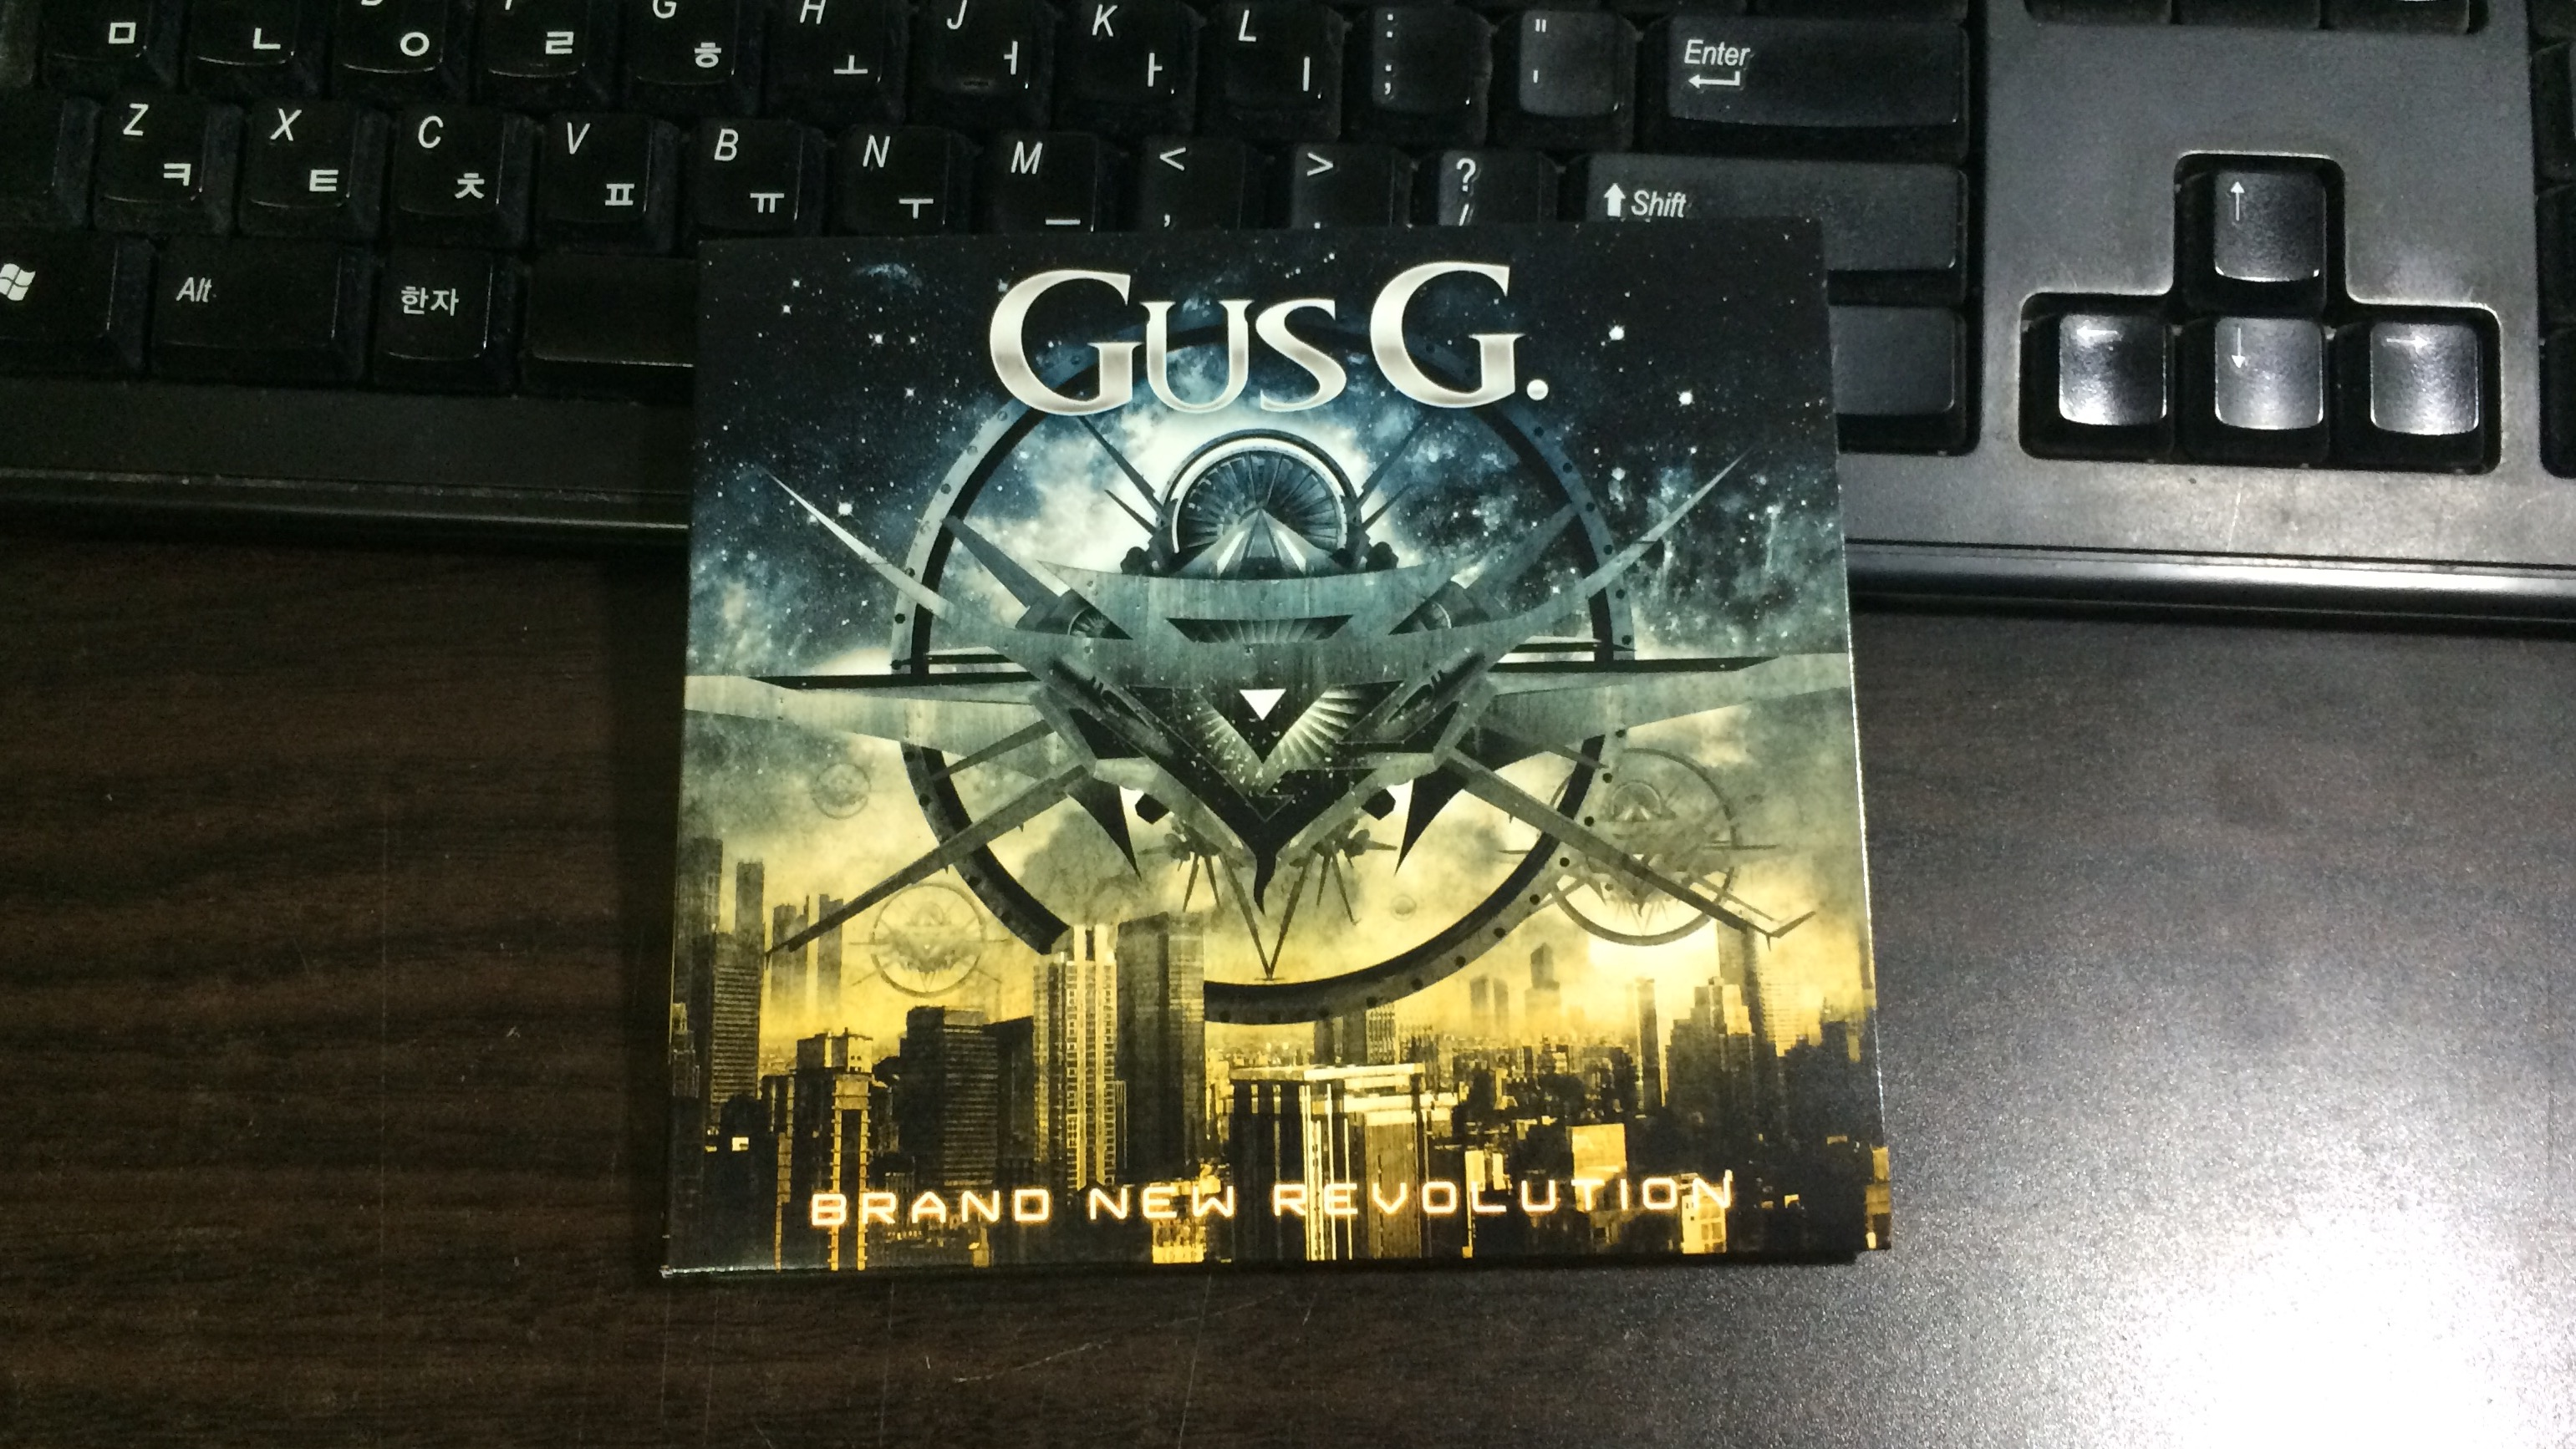 Brand New Revolution - Gus G / 2015